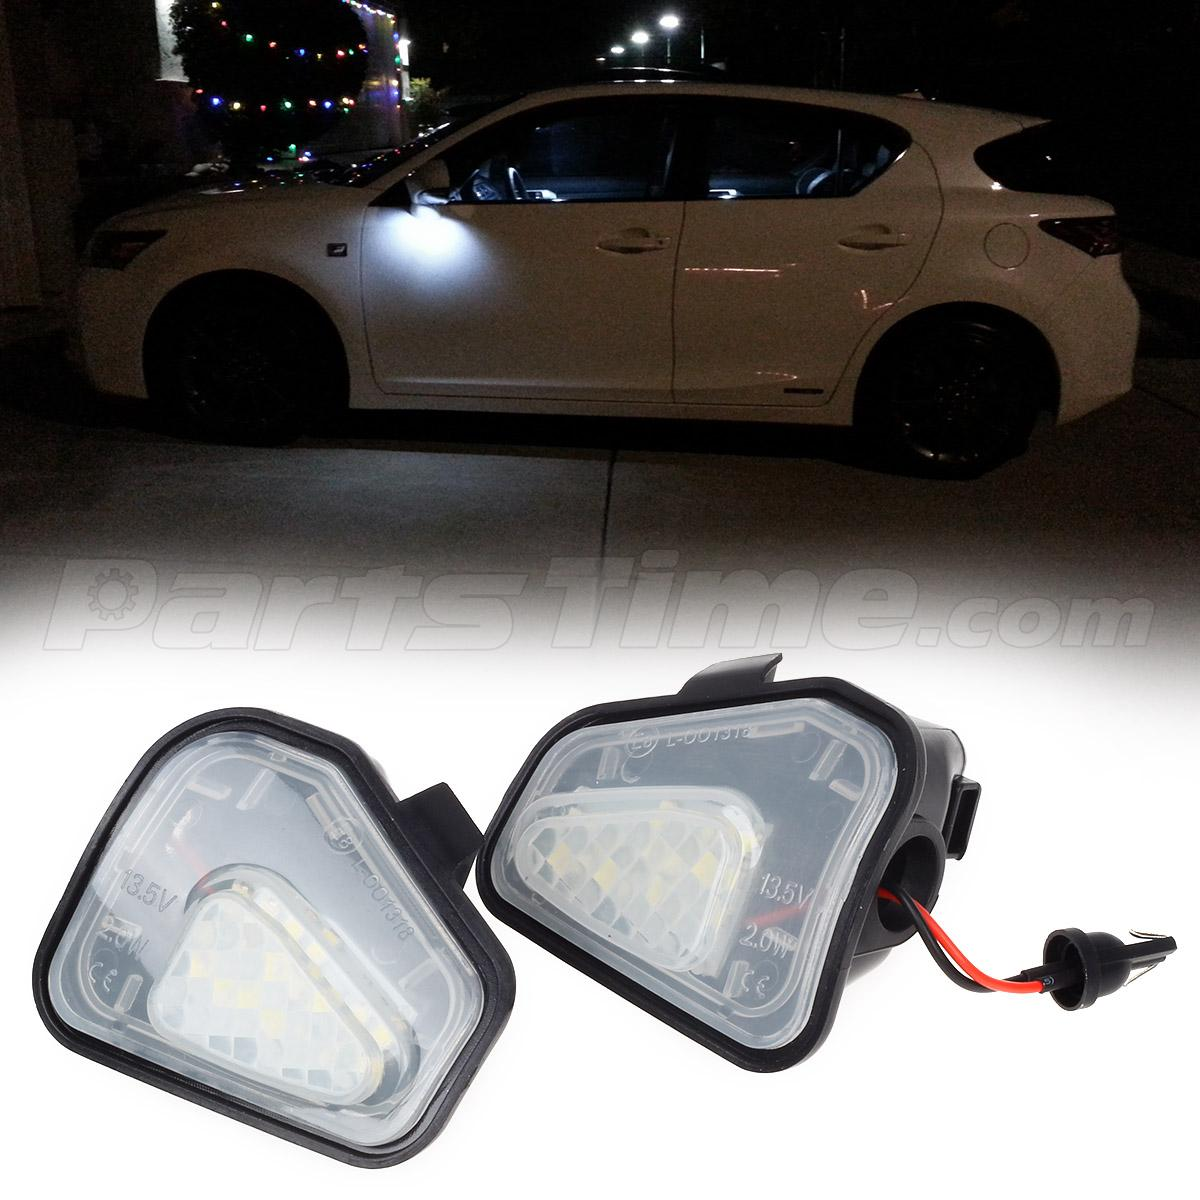 2pcs White Led Bulb Under Side Mirror Puddle Lights For Vw